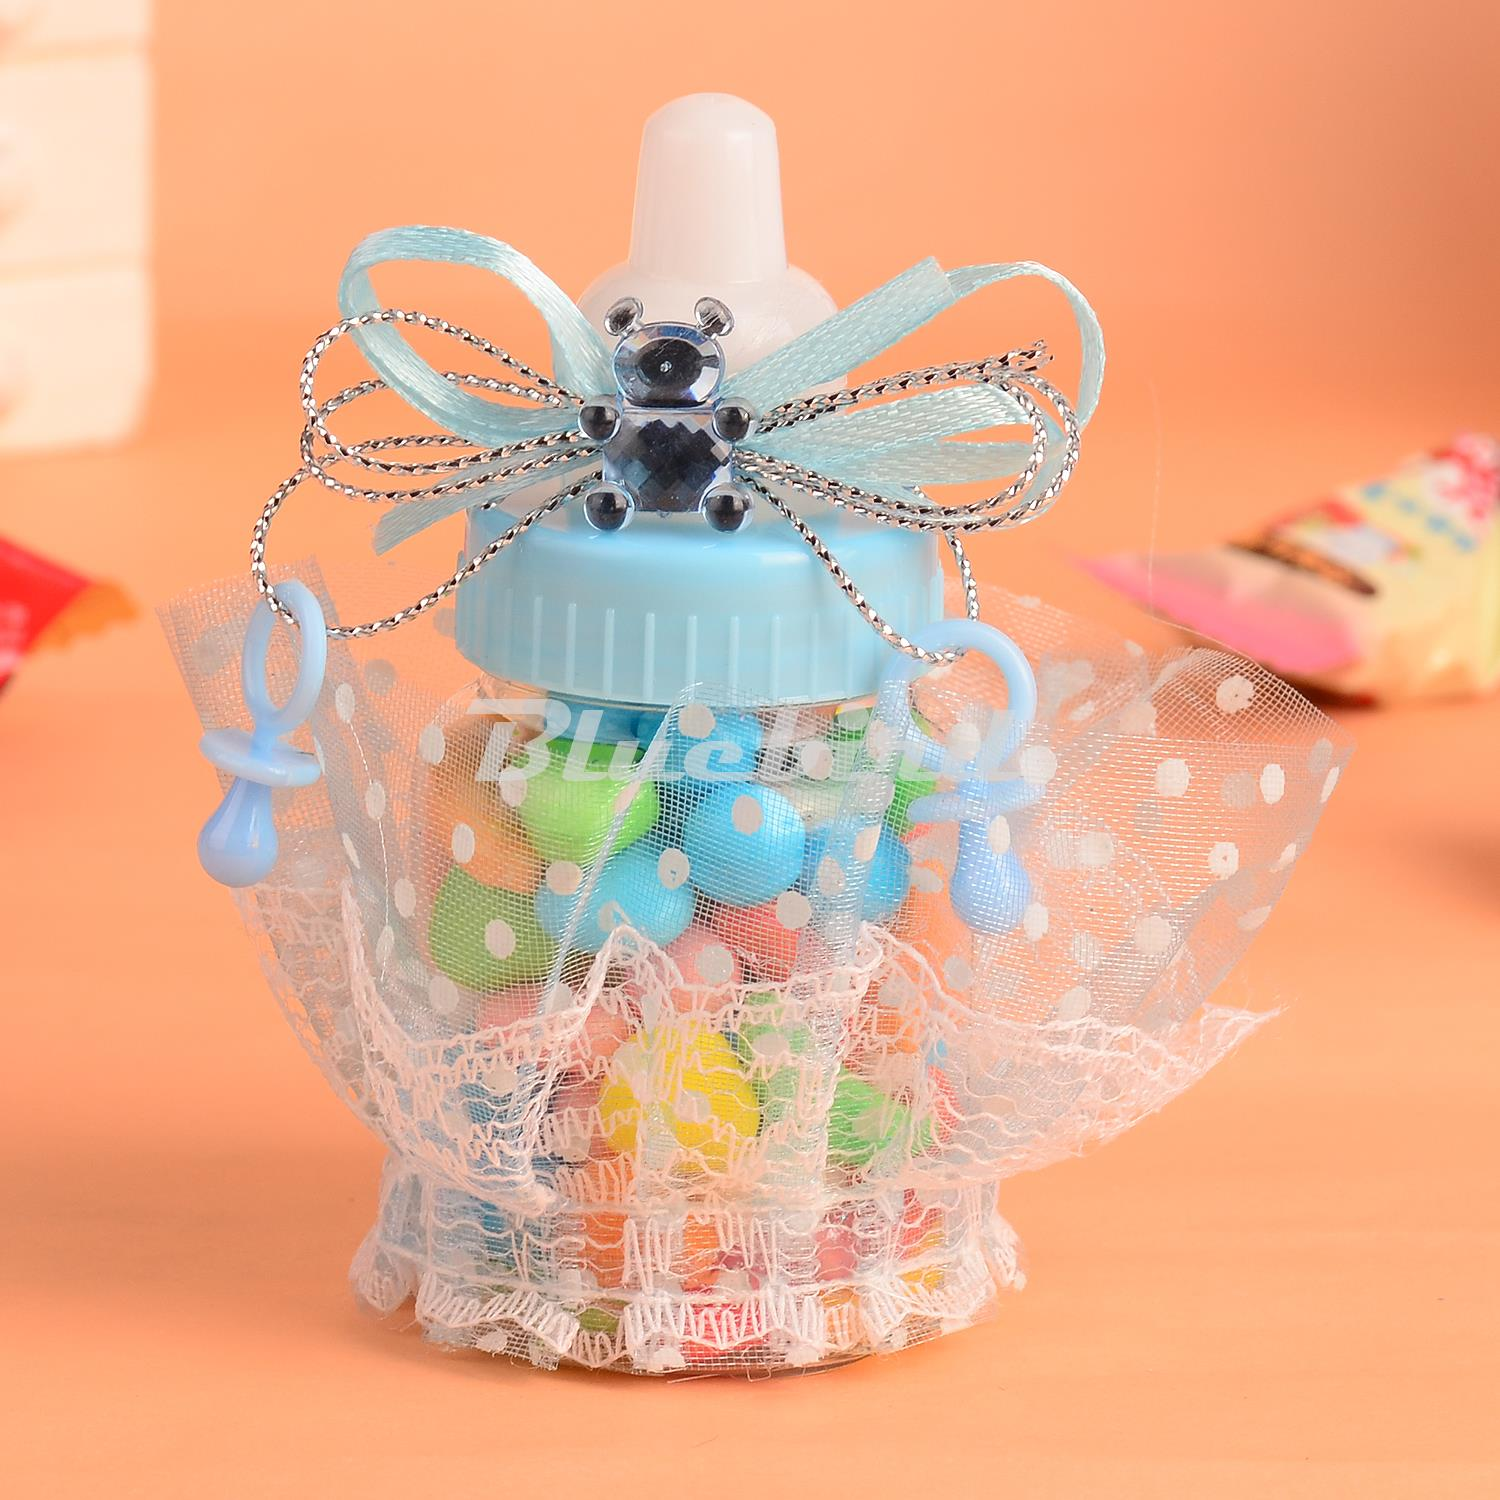 12pcs pinkblue baby shower candy bottle baptism christening birthday gift favors candy box bottle